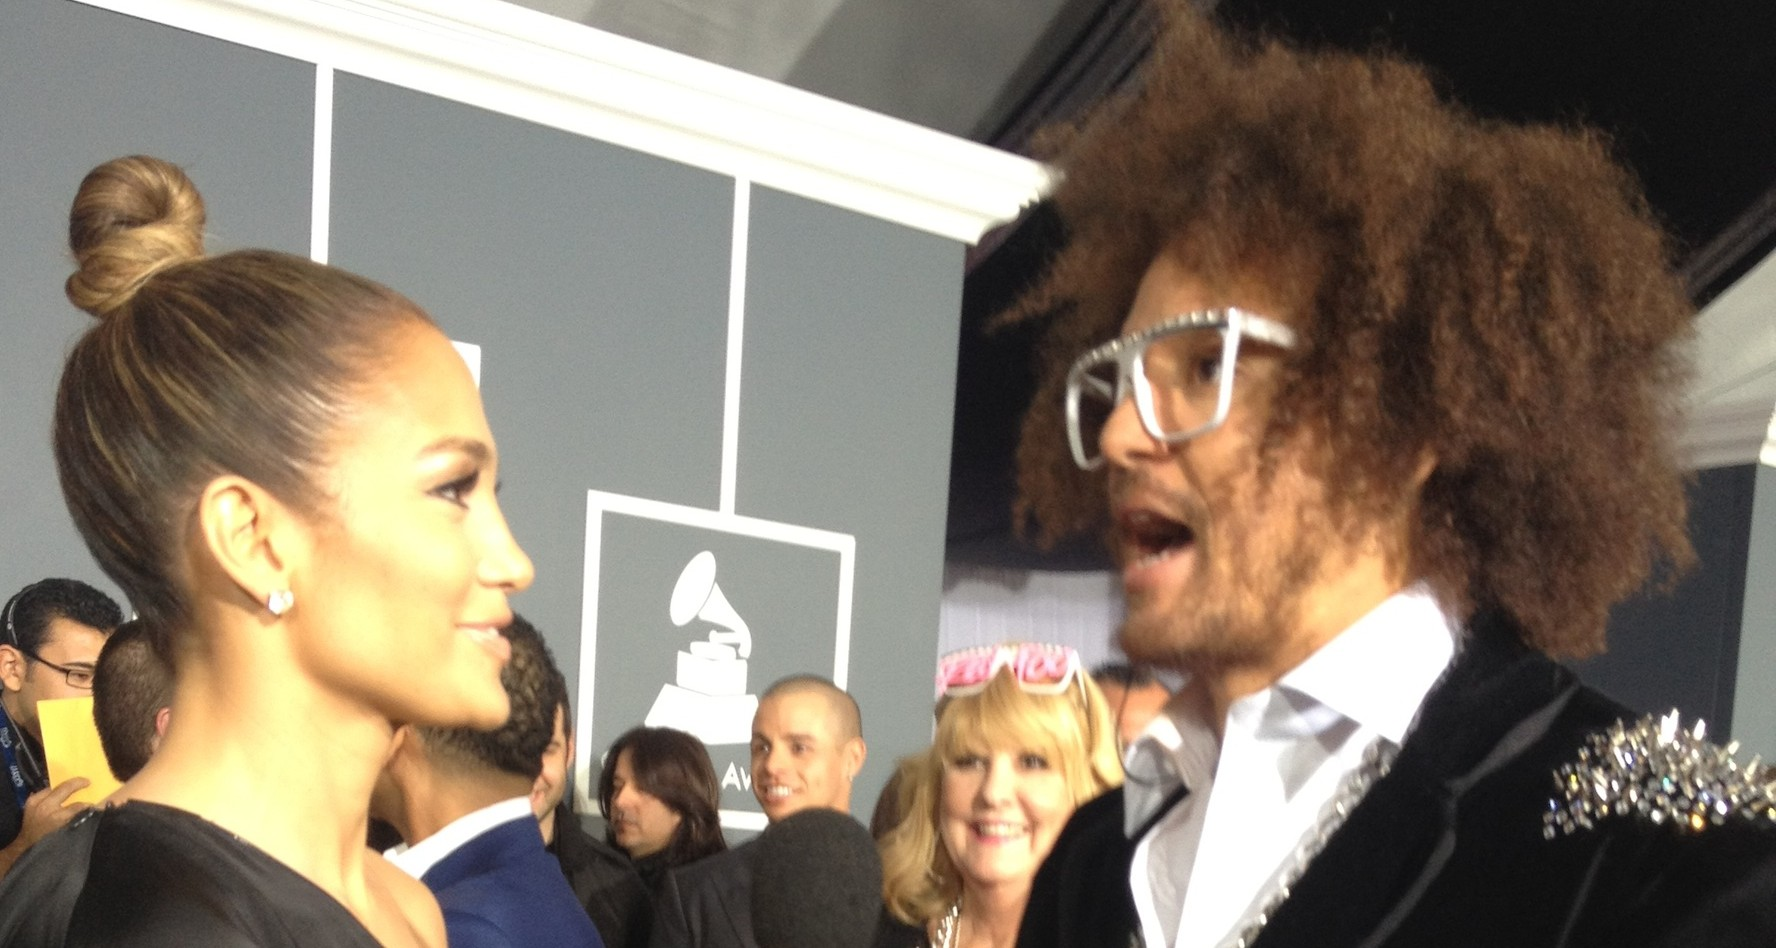 RedFoo interviews Jennifer Lopez at the Grammys for The Tonight Show with Jay Leno in his co-designed Shufflebot cufflinks from CuffLinks.com. (Bryan Allen)